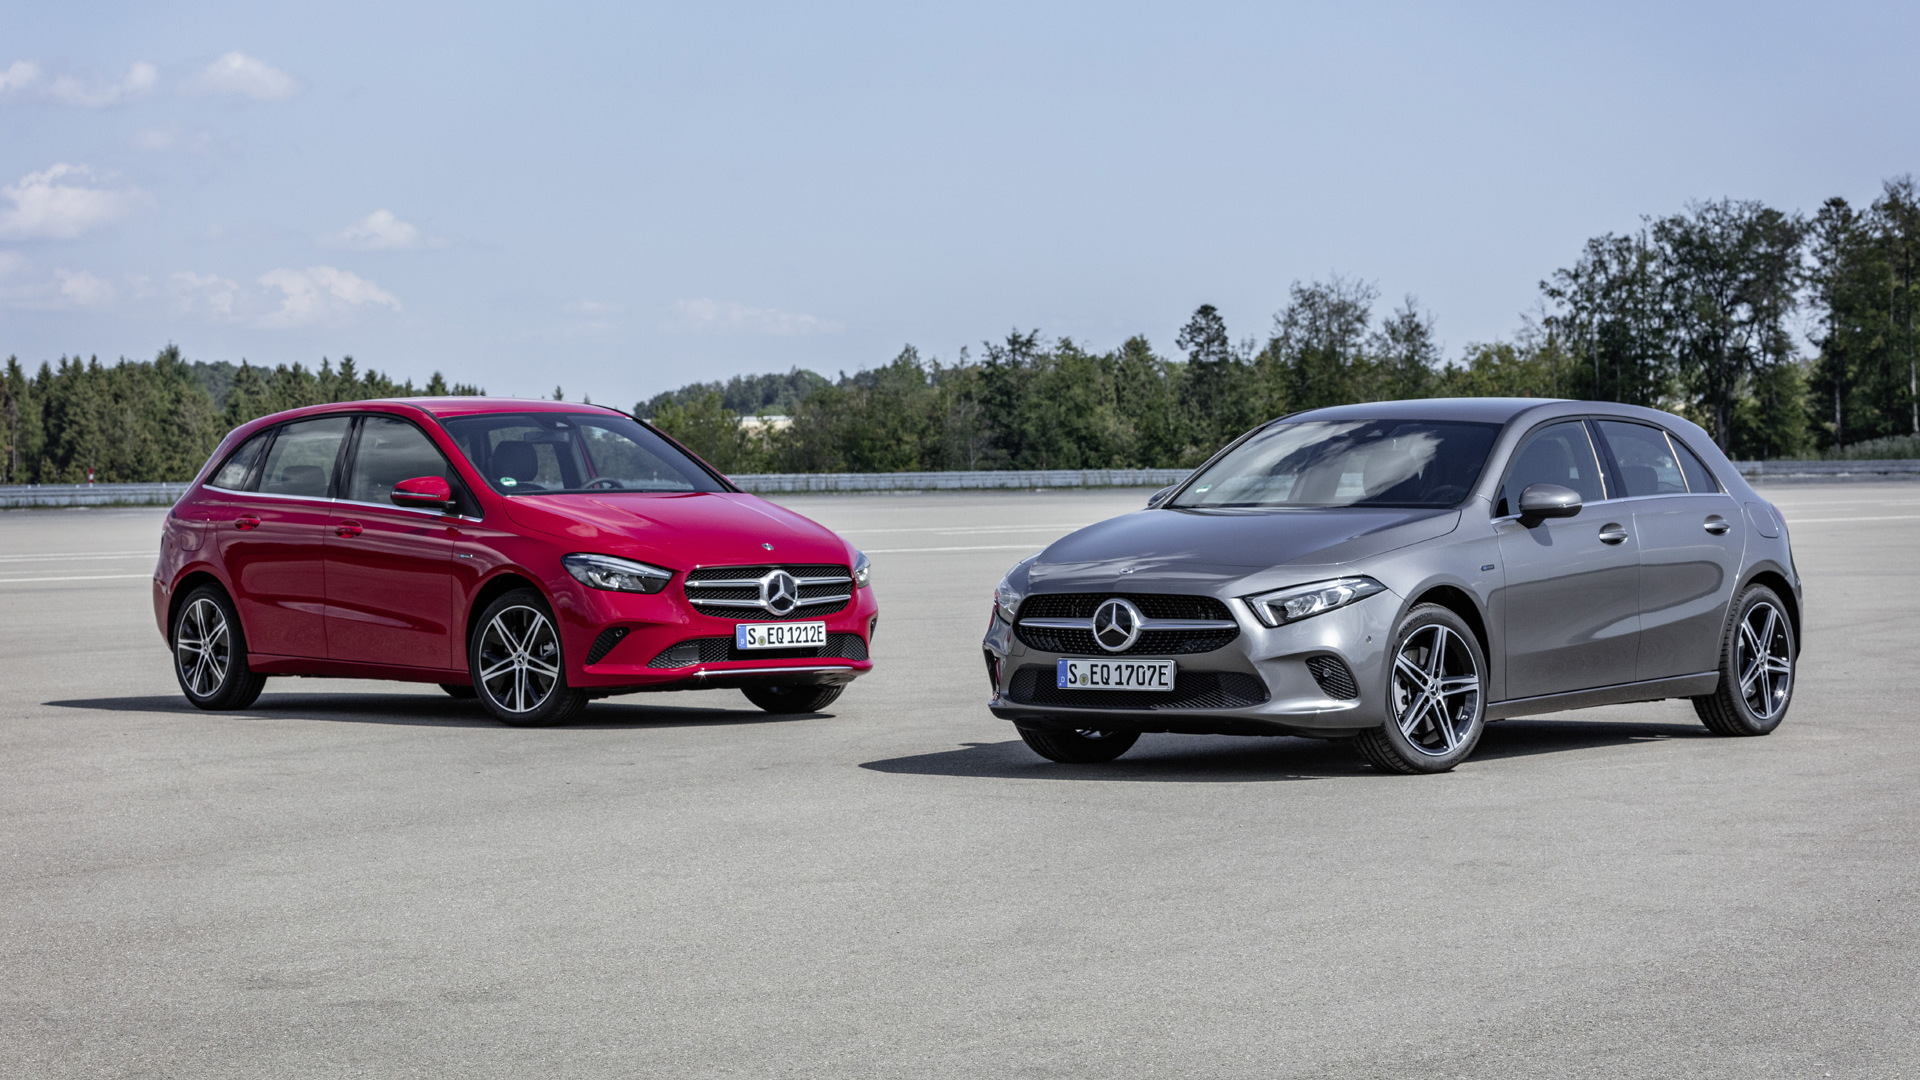 2019 Mercedes-Benz A250e hatchback and B250e